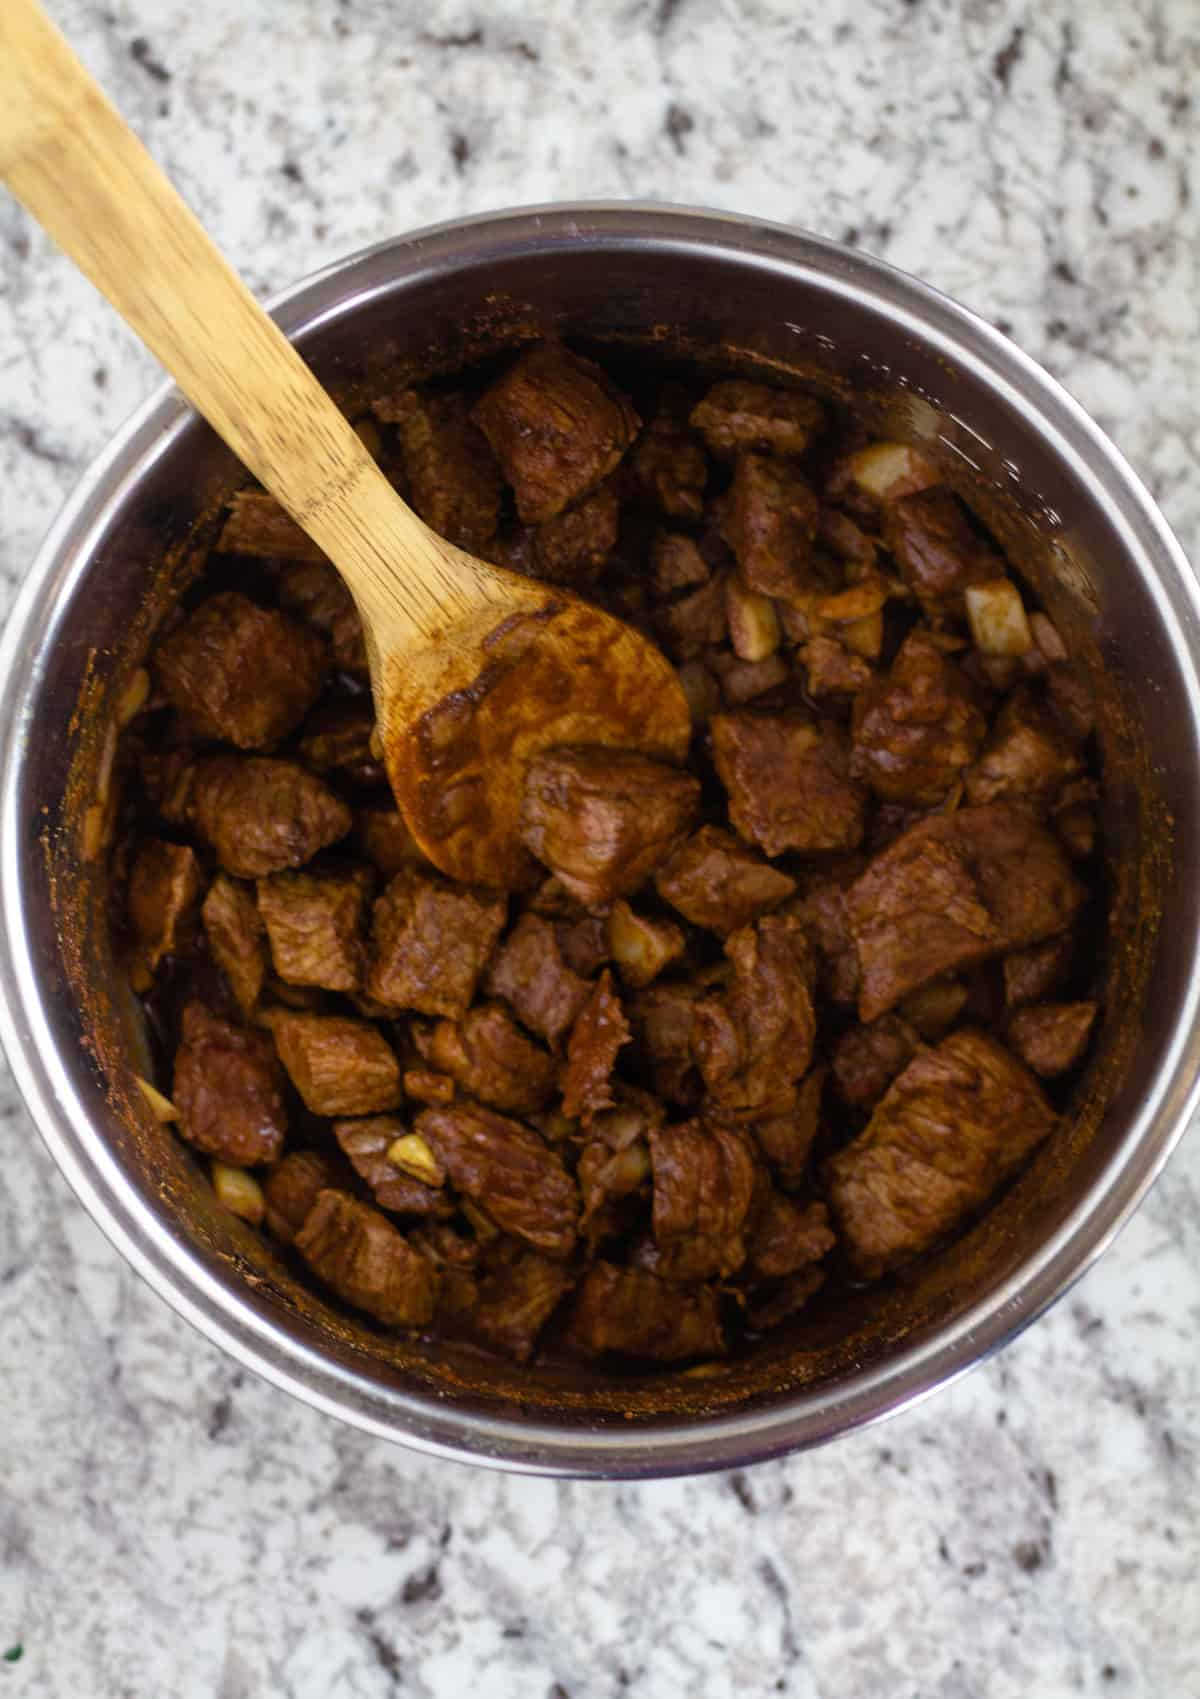 shredded beef in bowl on instant pot